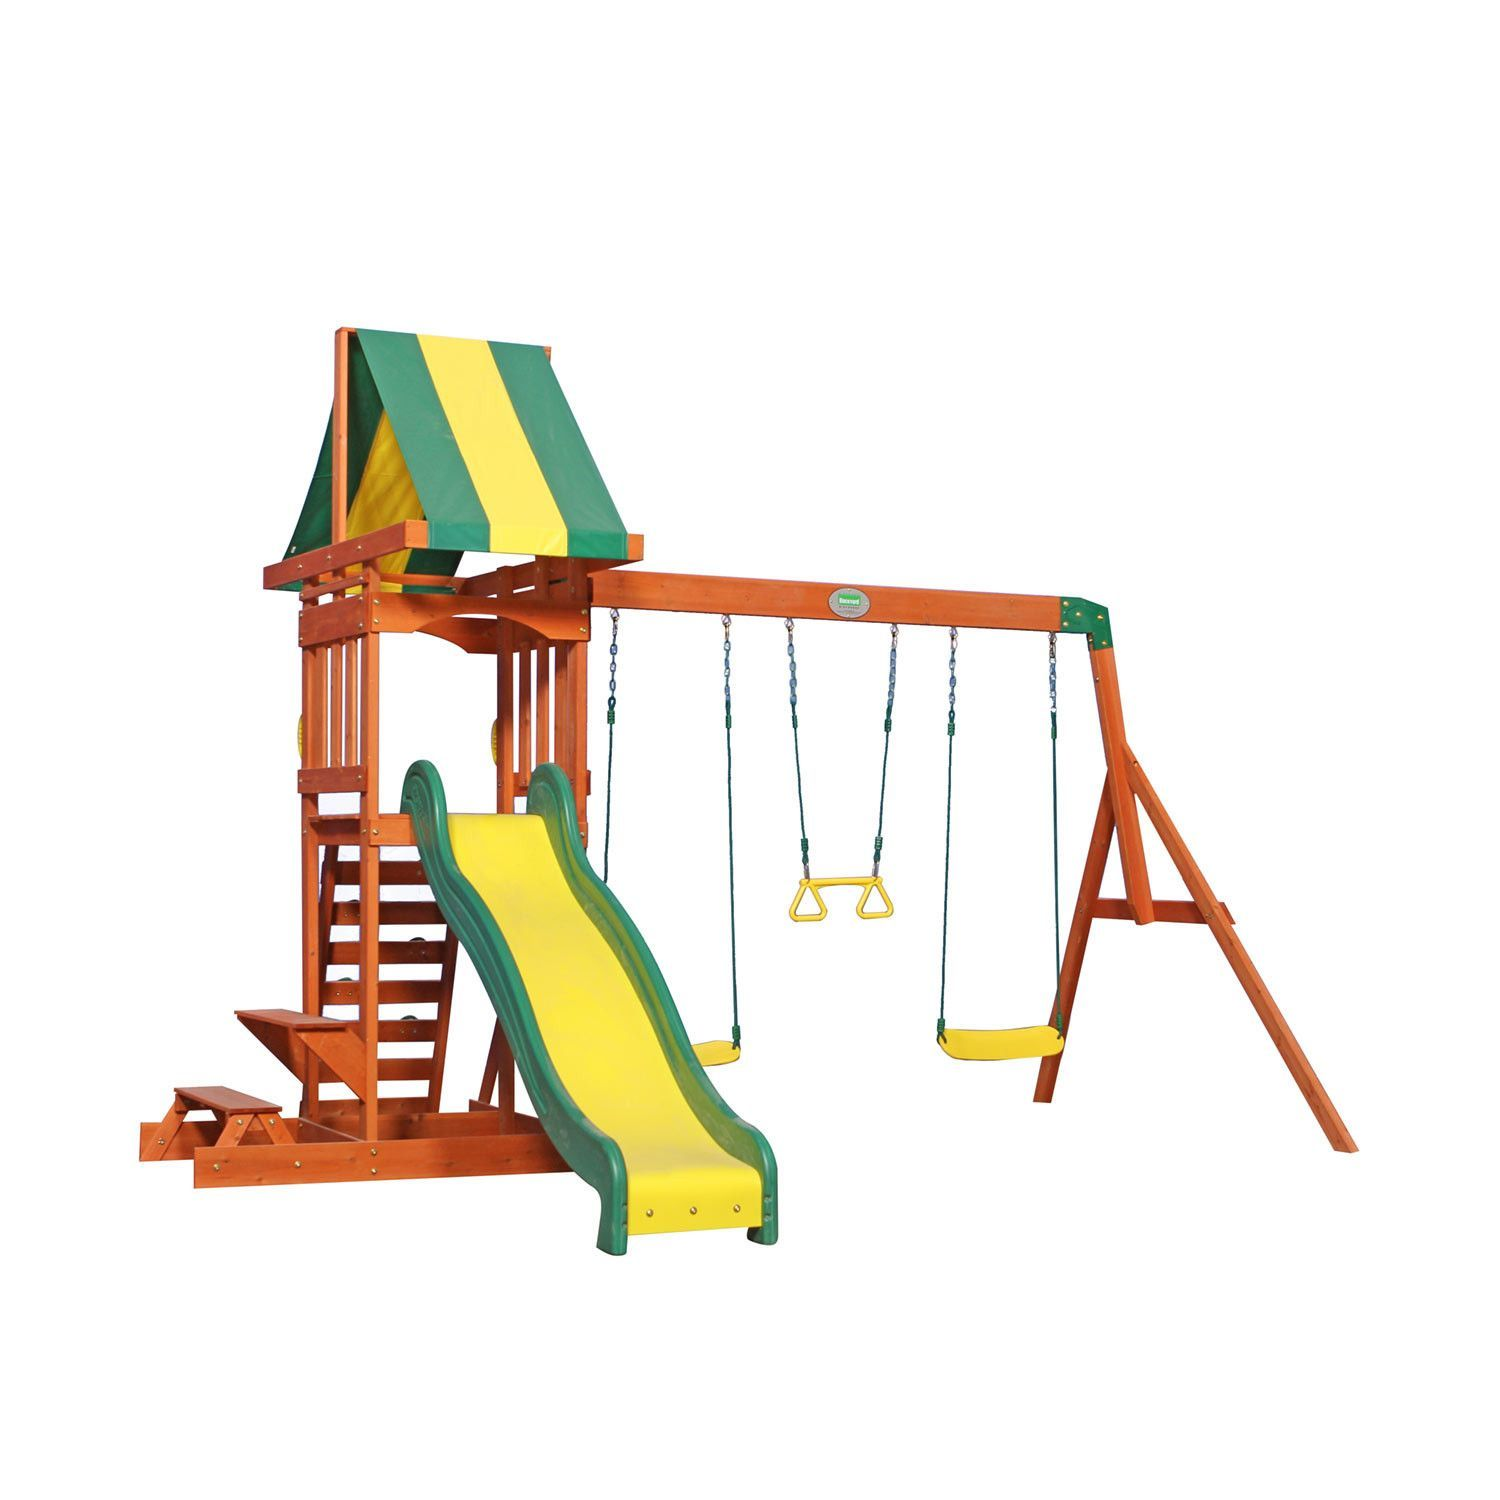 the prestige is a great swing set for small yards but still has